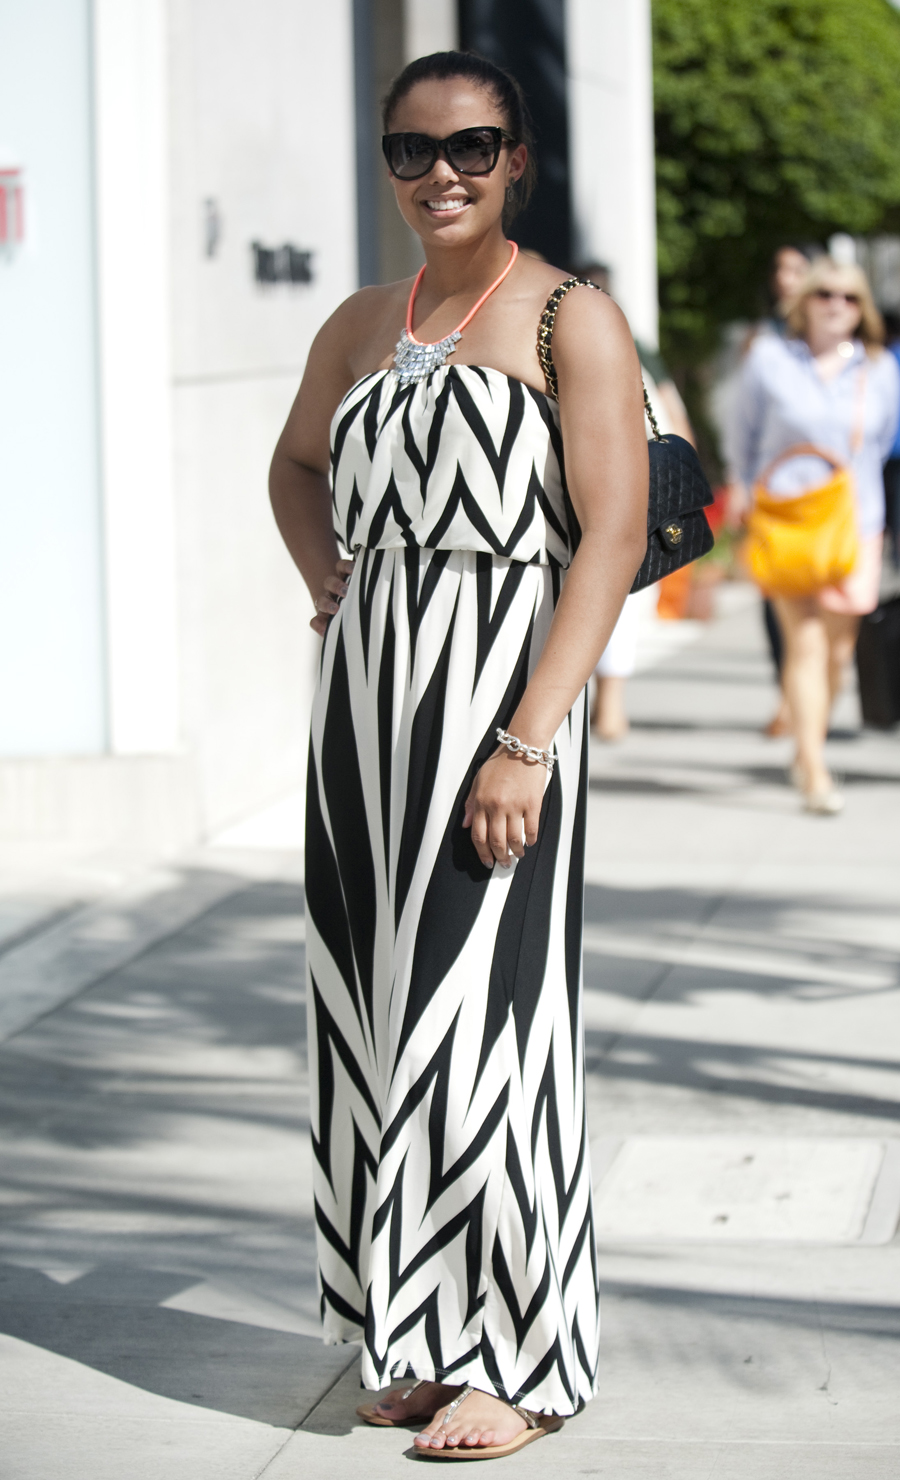 Danielle Kennedy, 28, in a Forever 21 maxi dress and necklace.